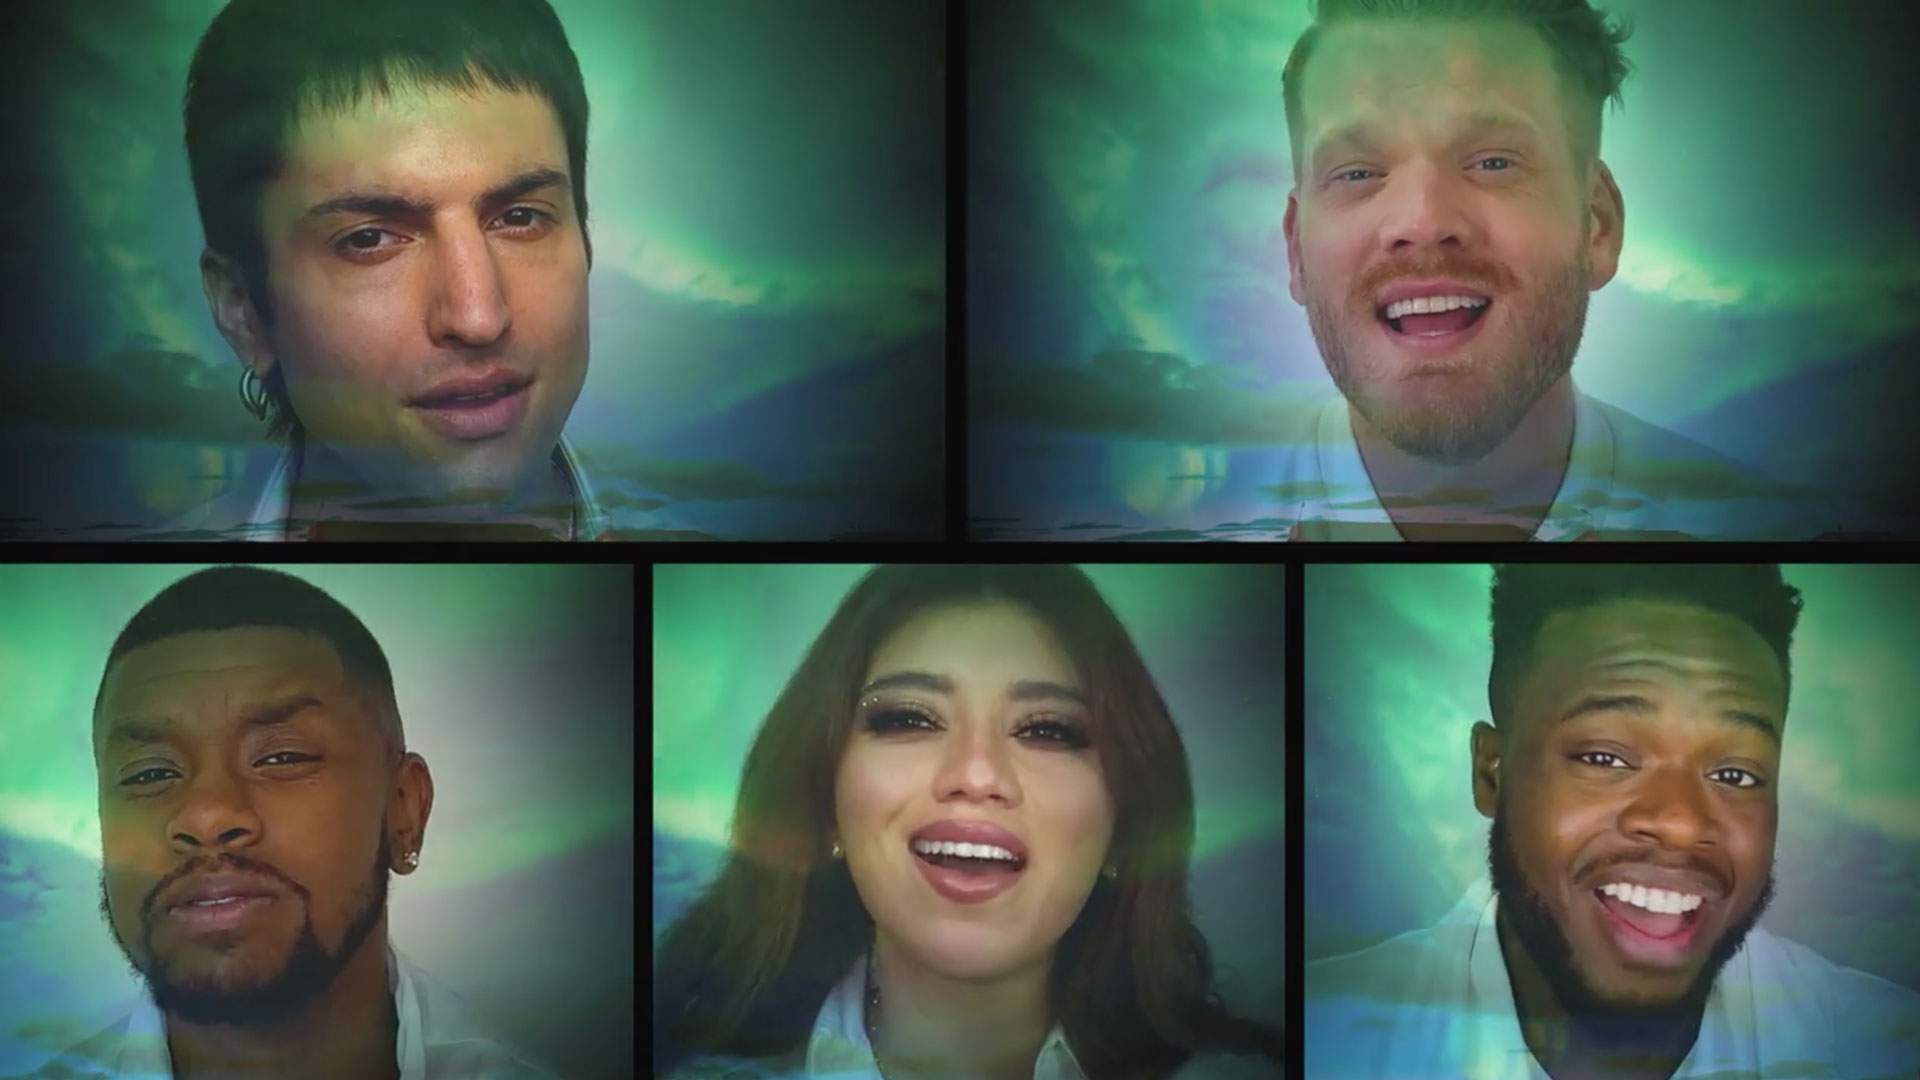 [OFFICIAL VIDEO] Dreams - Pentatonix